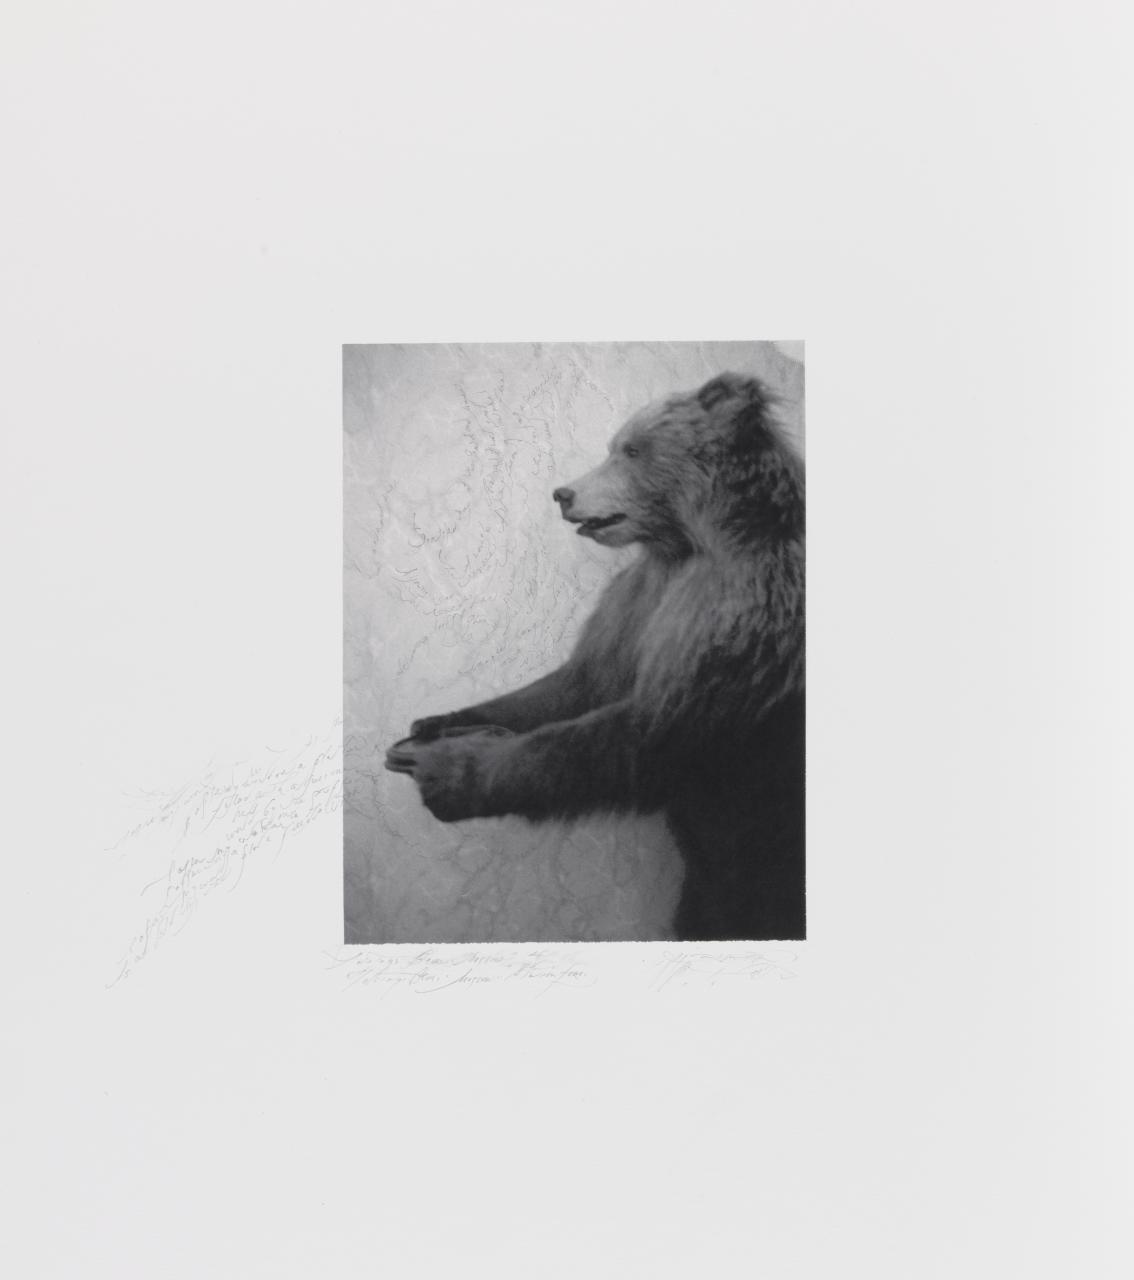 Patti Smith, American (b. 1946).  Tolstoy's Bear, Moscow , 2016. Inkjet print with pencil, 7 7/16 × 5 3/4 inches. The Nelson-Atkins Museum of Art, Kansas City, Missouri. Gift of the Hall Family Foundation, 2016.51.5.